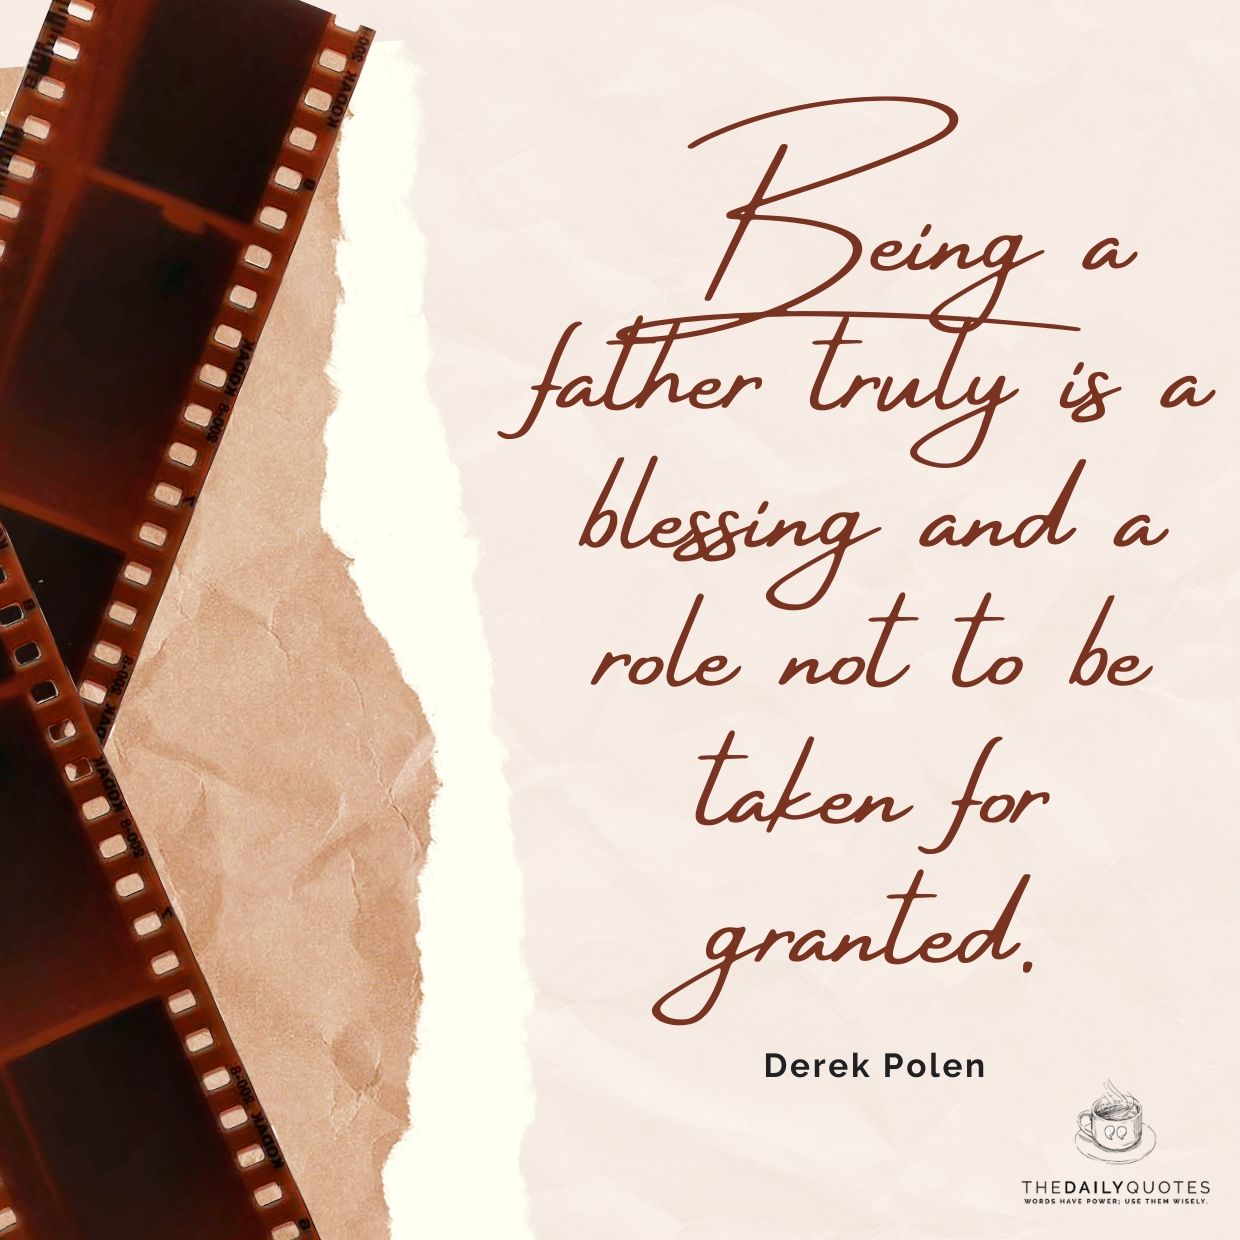 Being a father truly is a blessing and a role not to be taken for granted.